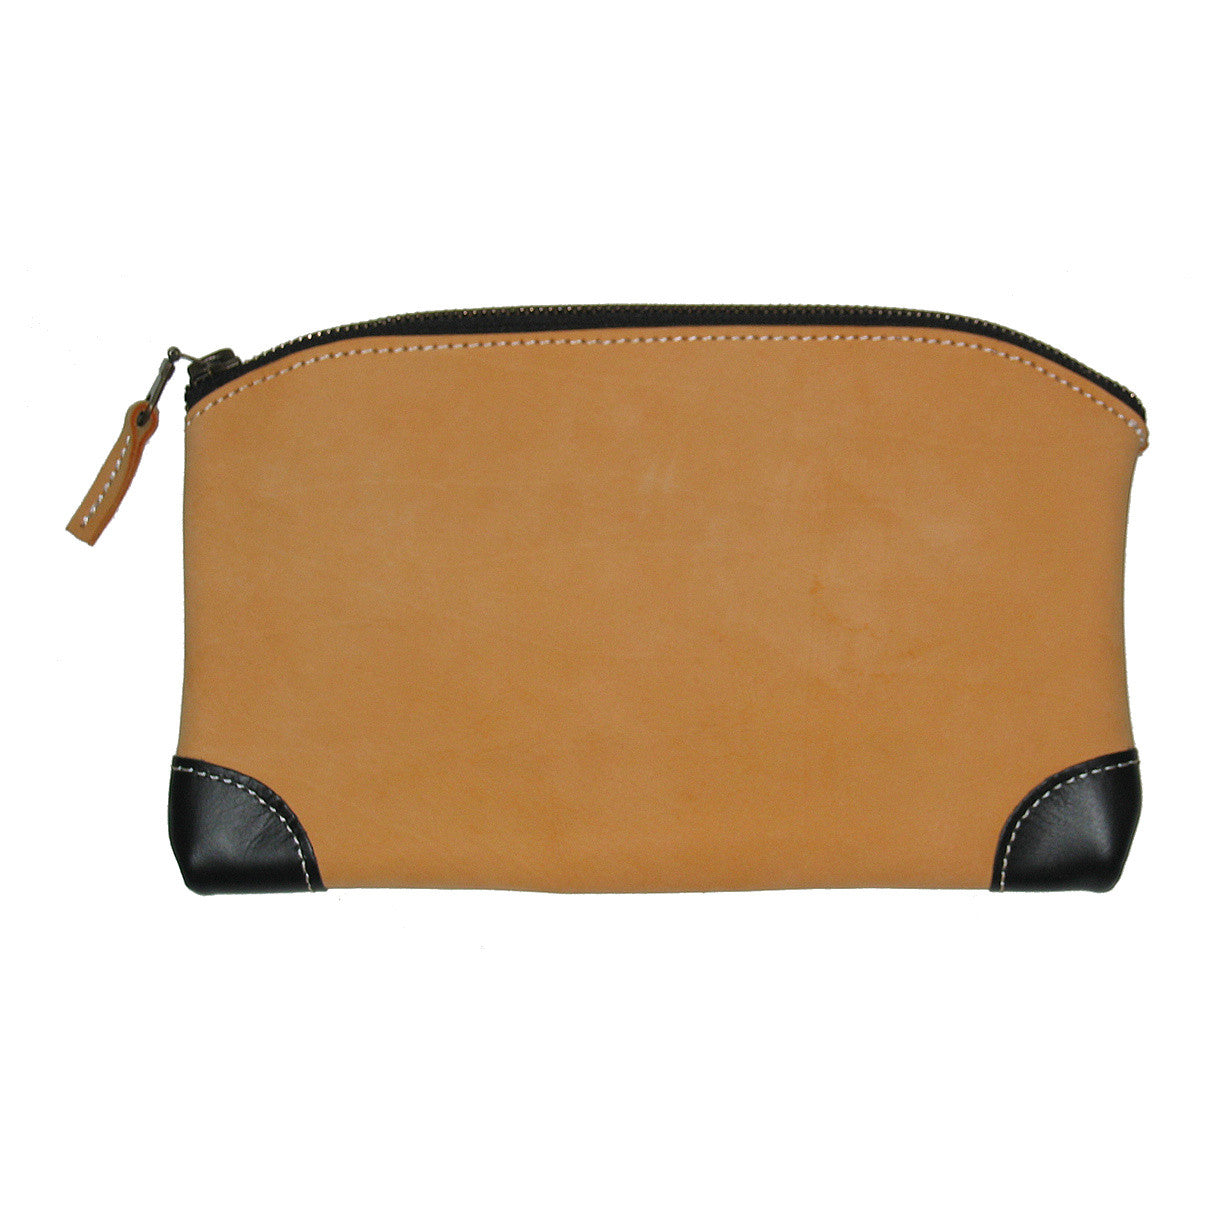 Multi Purpose Zippered Bag in Top Grain Leather